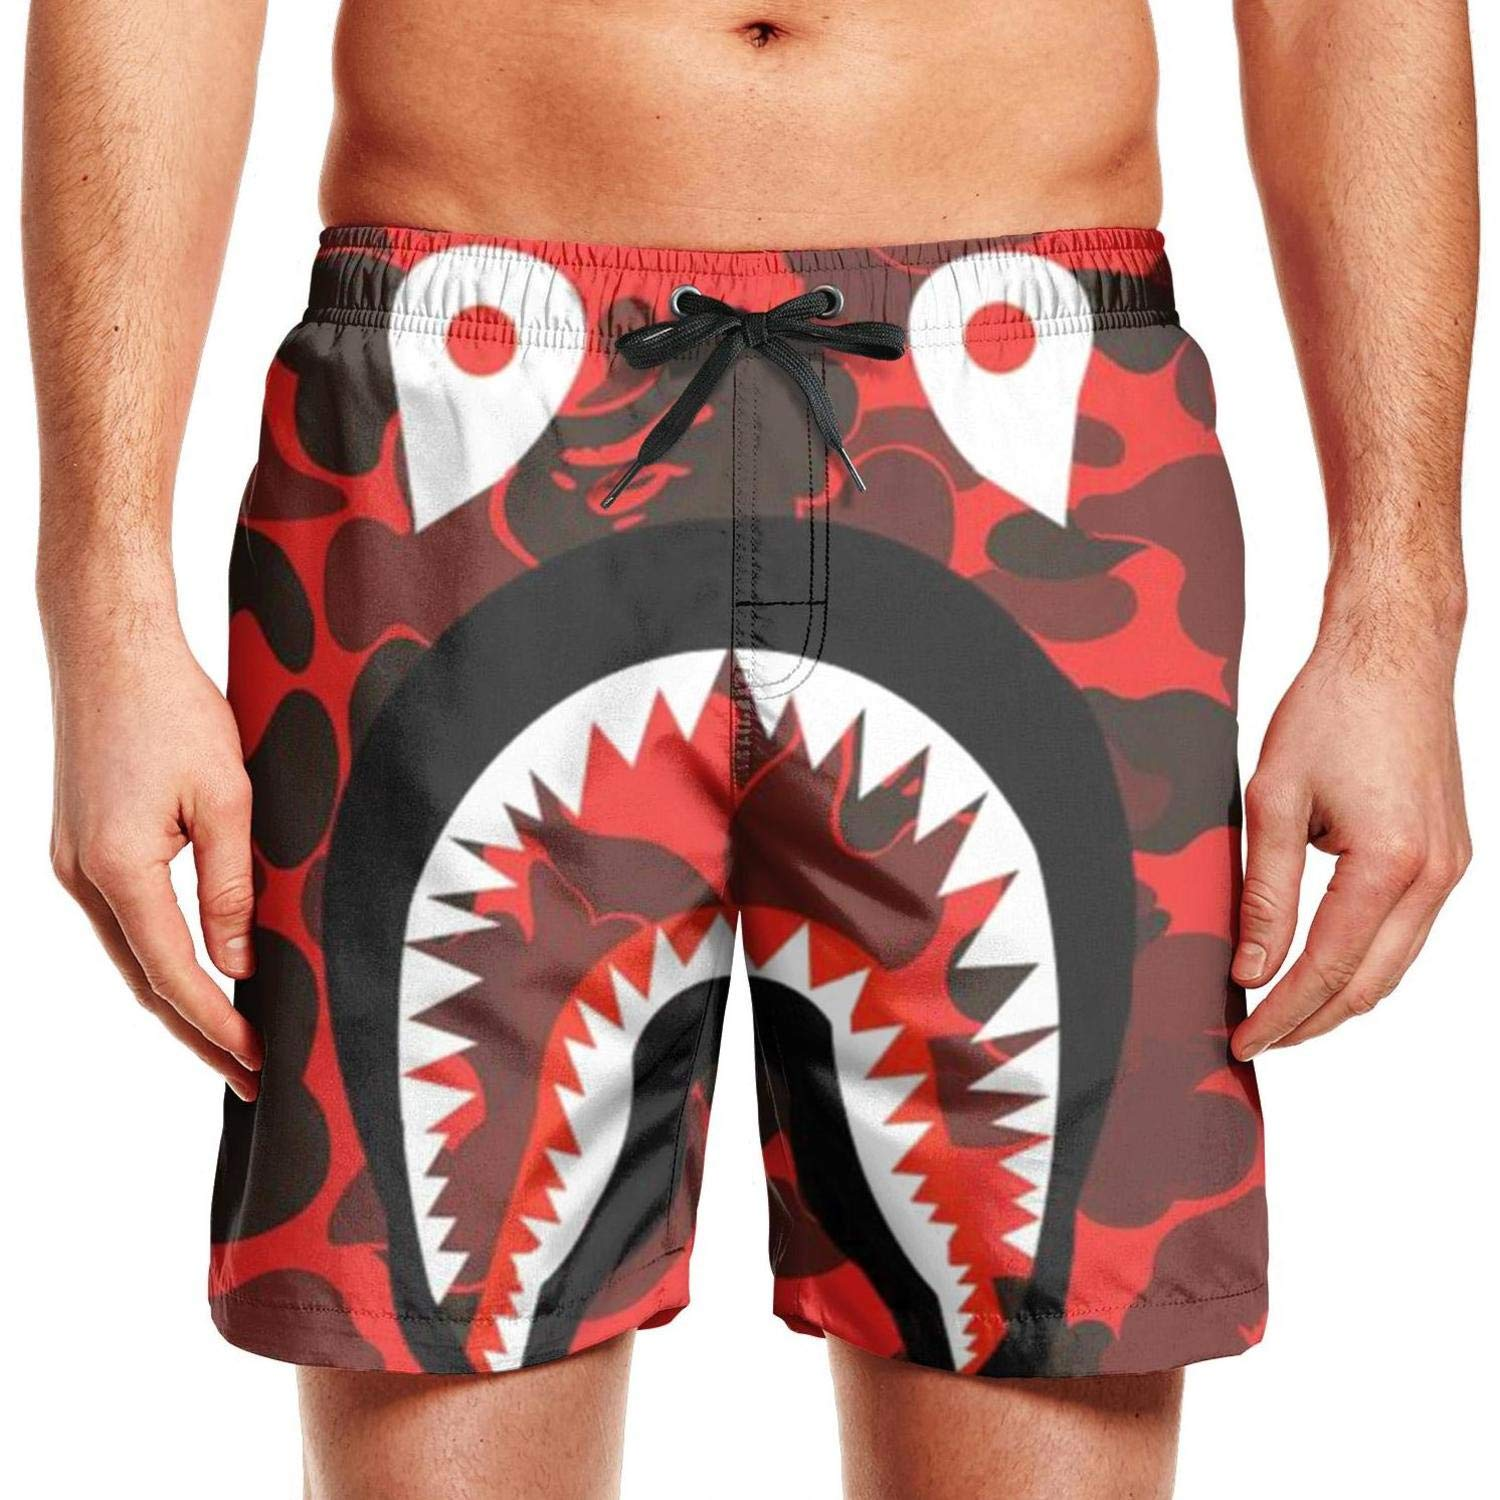 Mens Beach Shorts Shark Under The Camouflage Quick Dry Swim Trunks Side Pockets Board Shorts